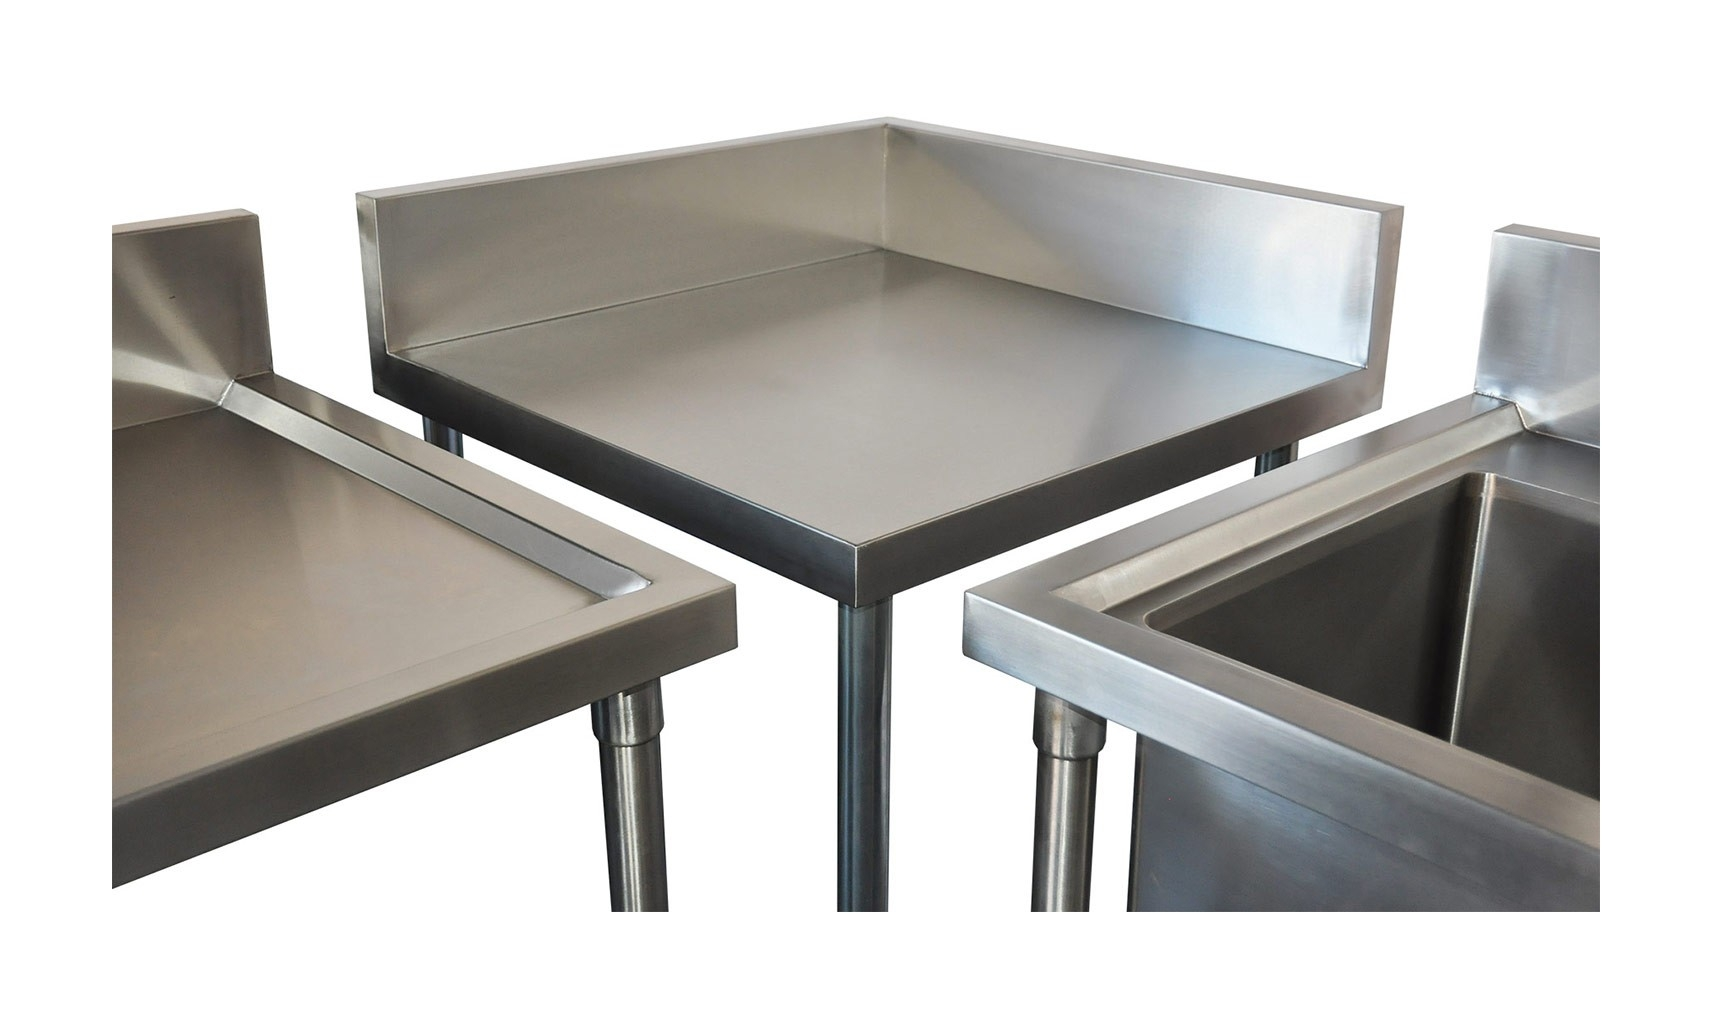 Commercial Grade Stainless Steel Corner 700mm Splashback Bench, 700 X 700 x 900mm high